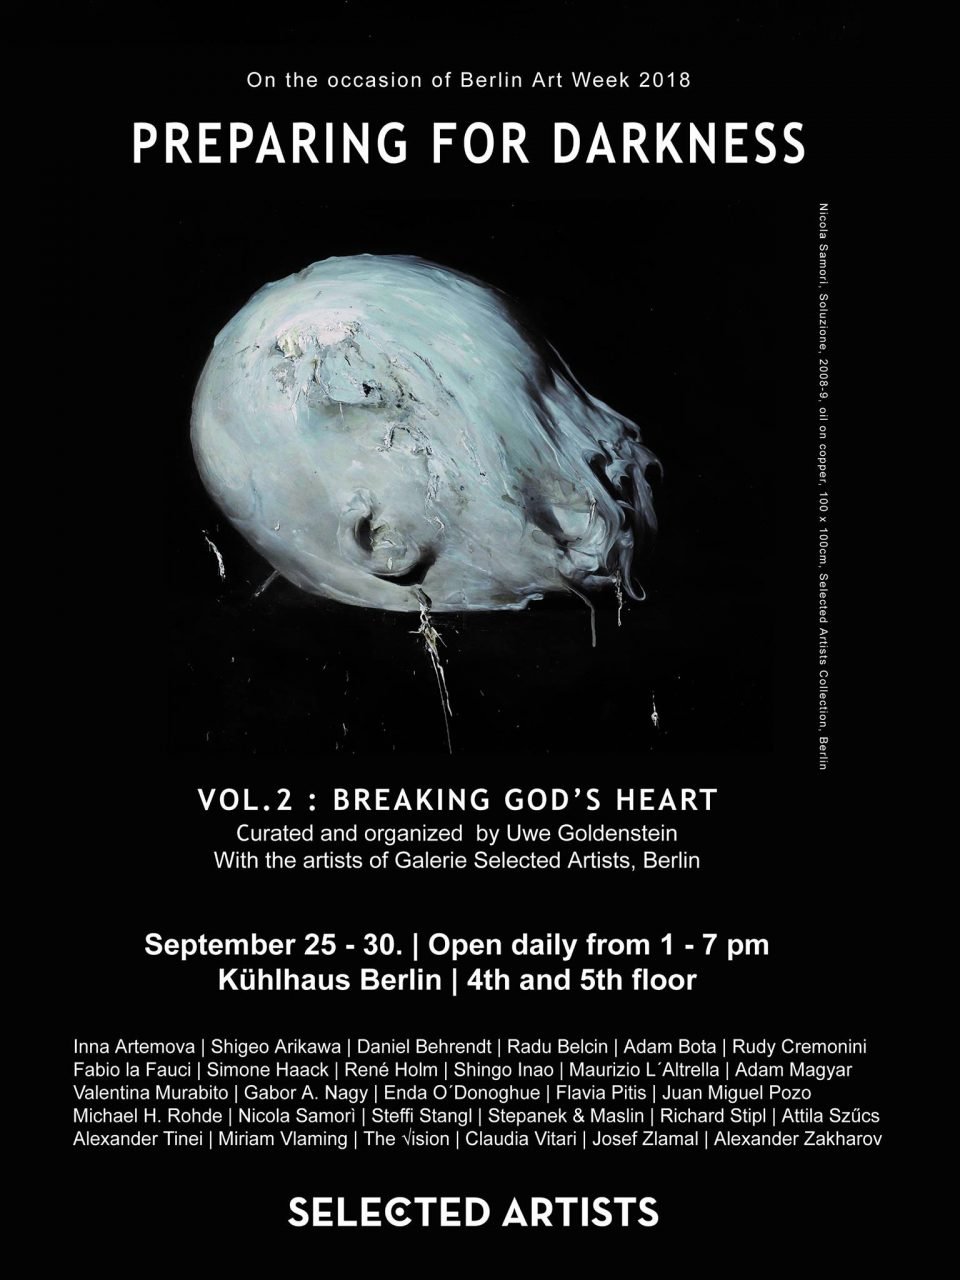 Preparing For Darkness Volume 2: Breaking God's Heart image